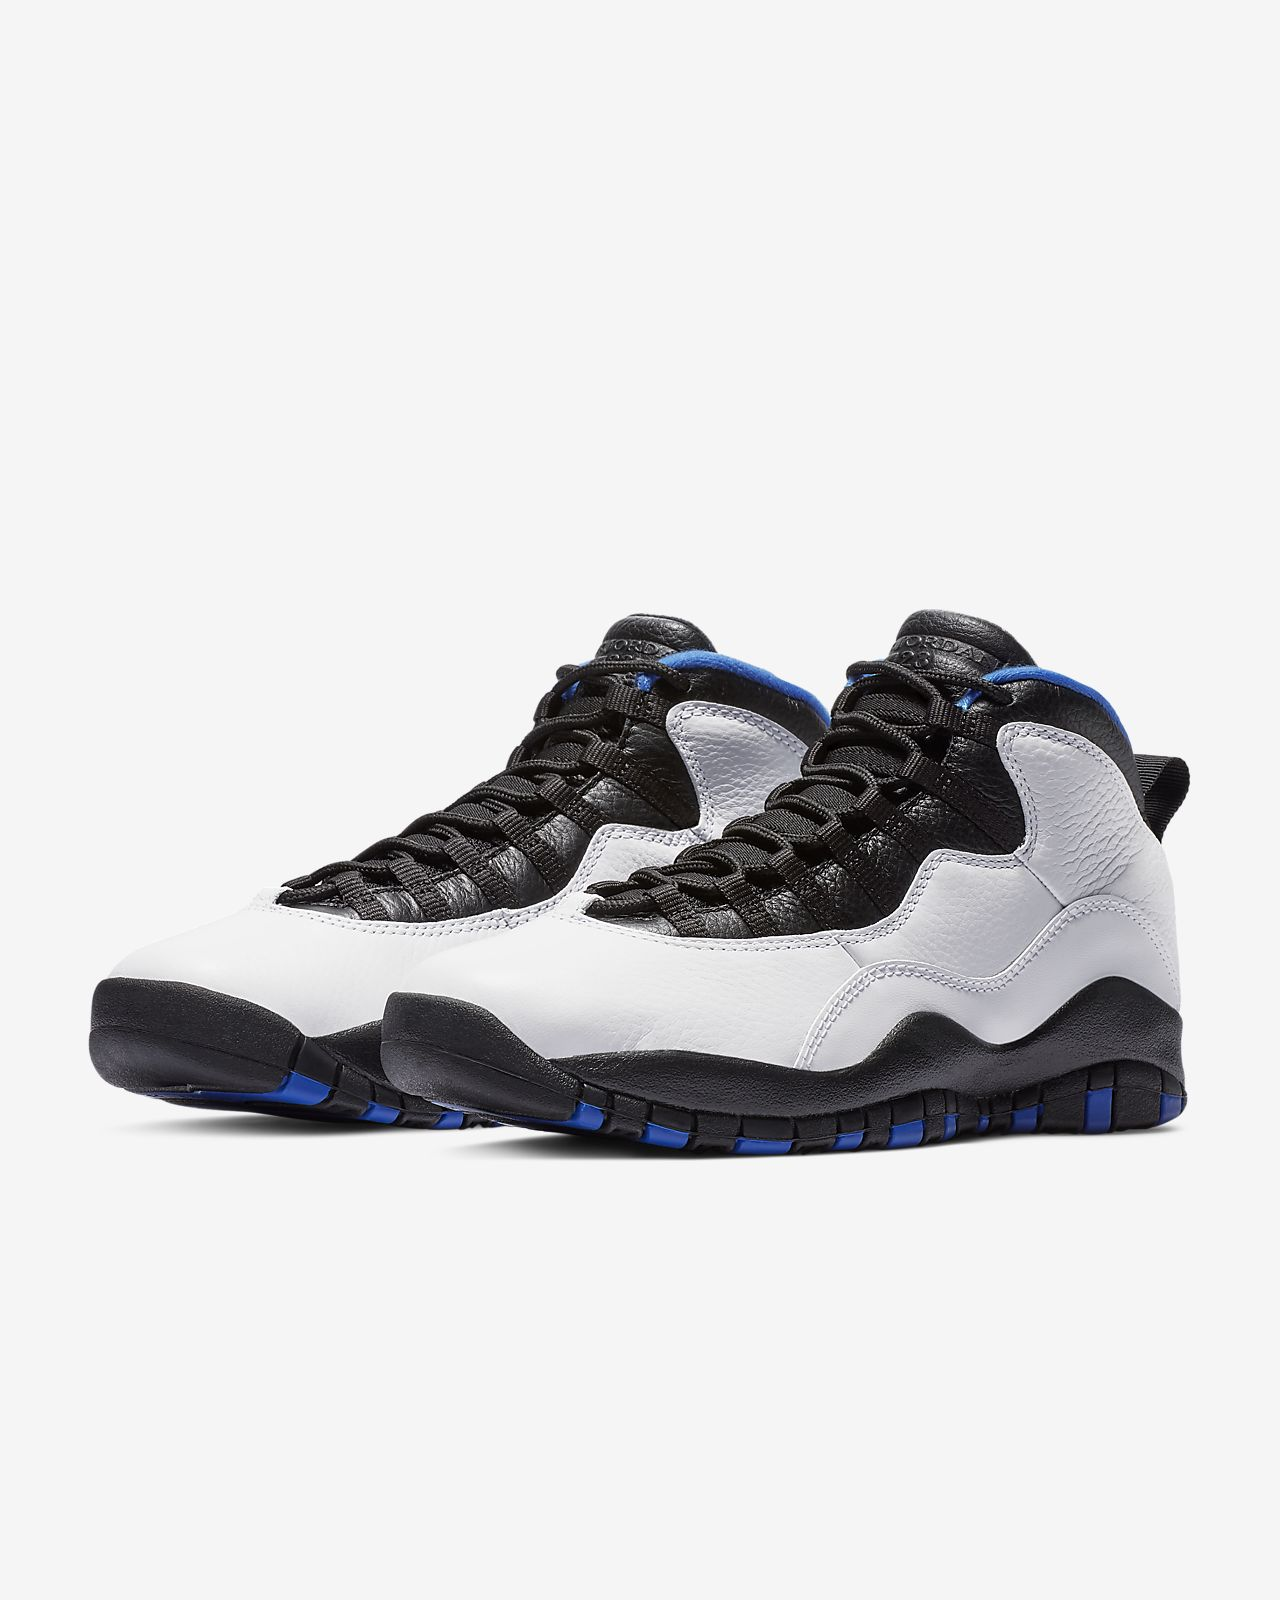 18a145caff7f Air Jordan 10 Retro Men s Shoe. Nike.com AU